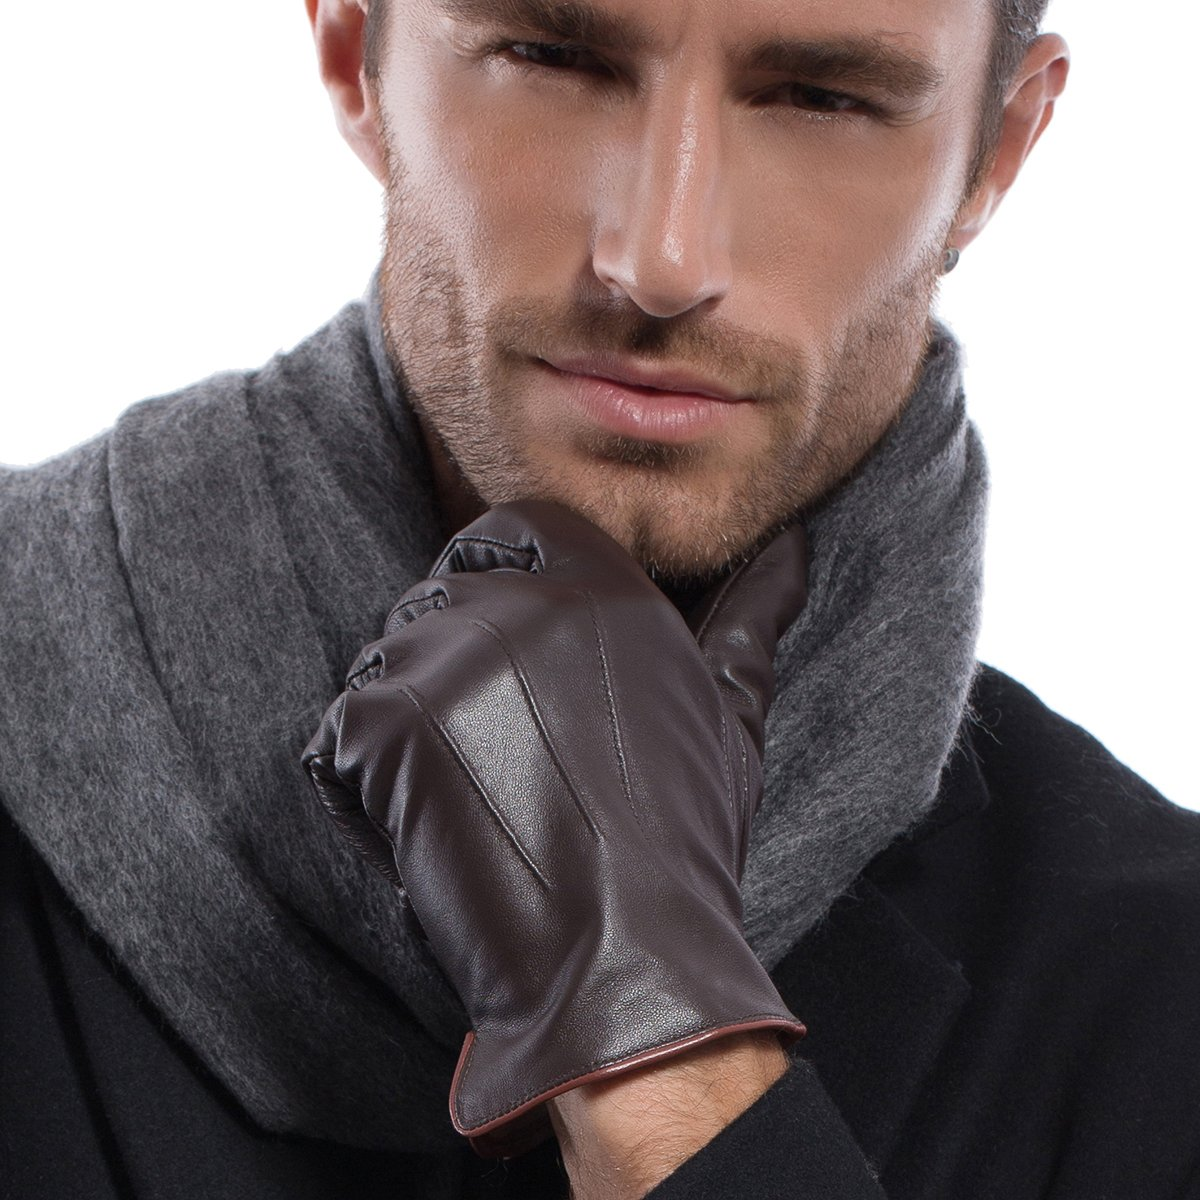 MATSU Luxury Men Winter Warm Lambskin Leather Gloves M1006 (L, Brown(2014 winter new /100% cashmere lining / Touchscreen available))